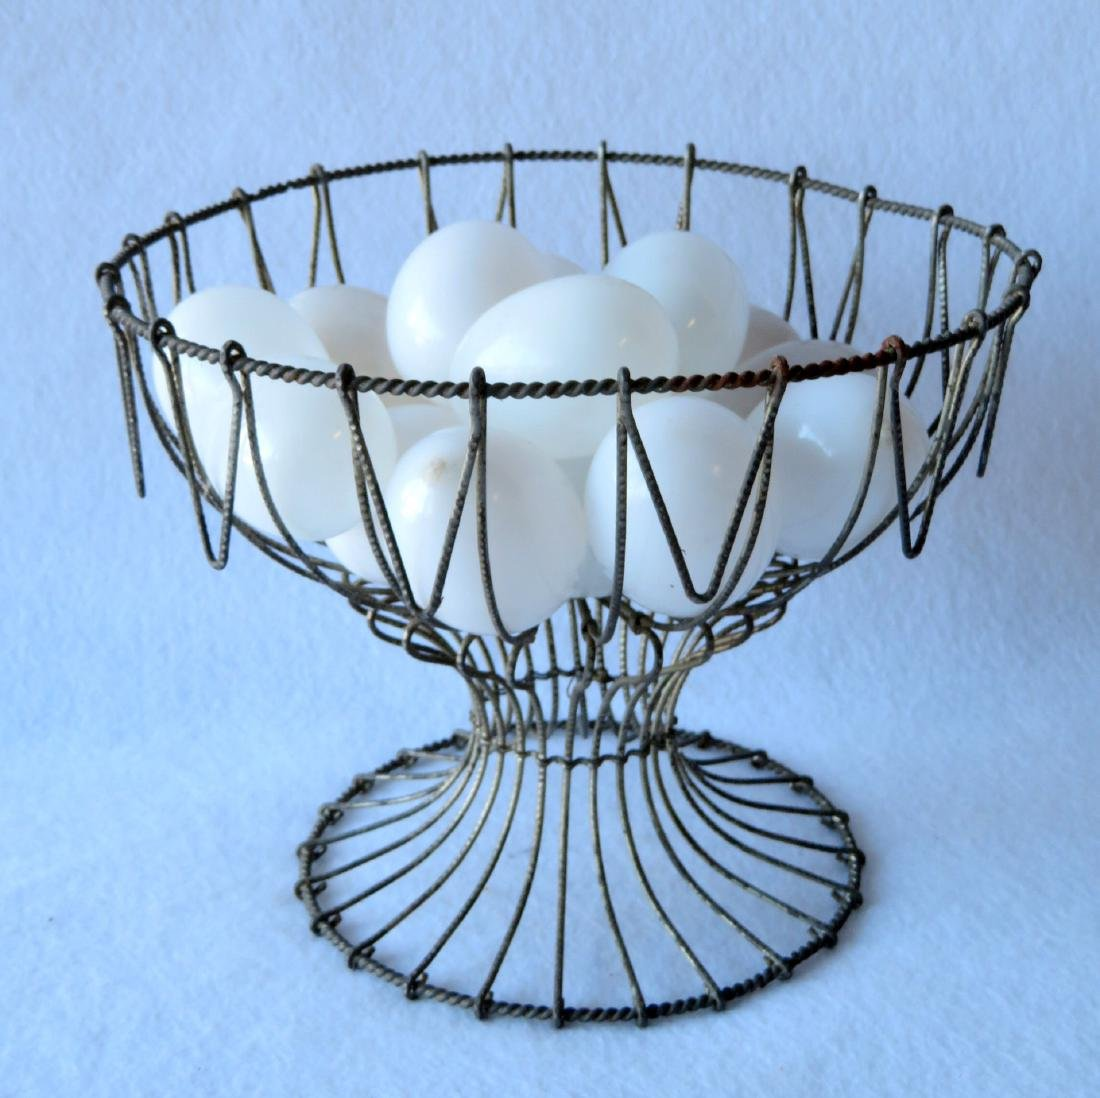 Wire egg basket holding 15 hand blown glass eggs, all